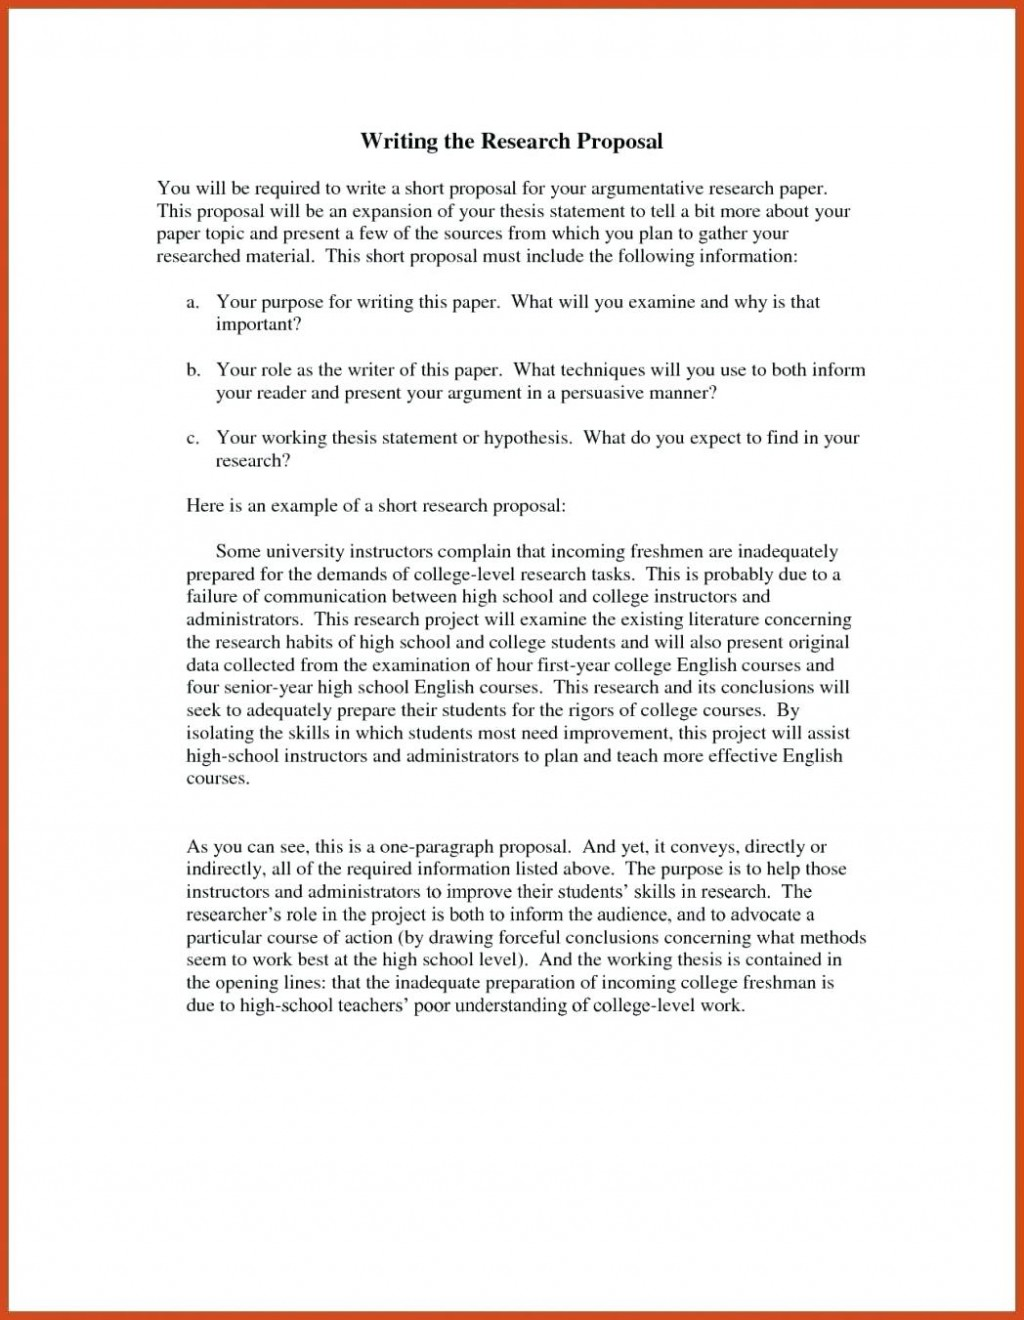 025 Sop Latex Template Research Plan Example Cover Letters Travel Agent An Of Paper In Format Proposal Design Onlines To Read Remarkable Essays Online Short Best Large